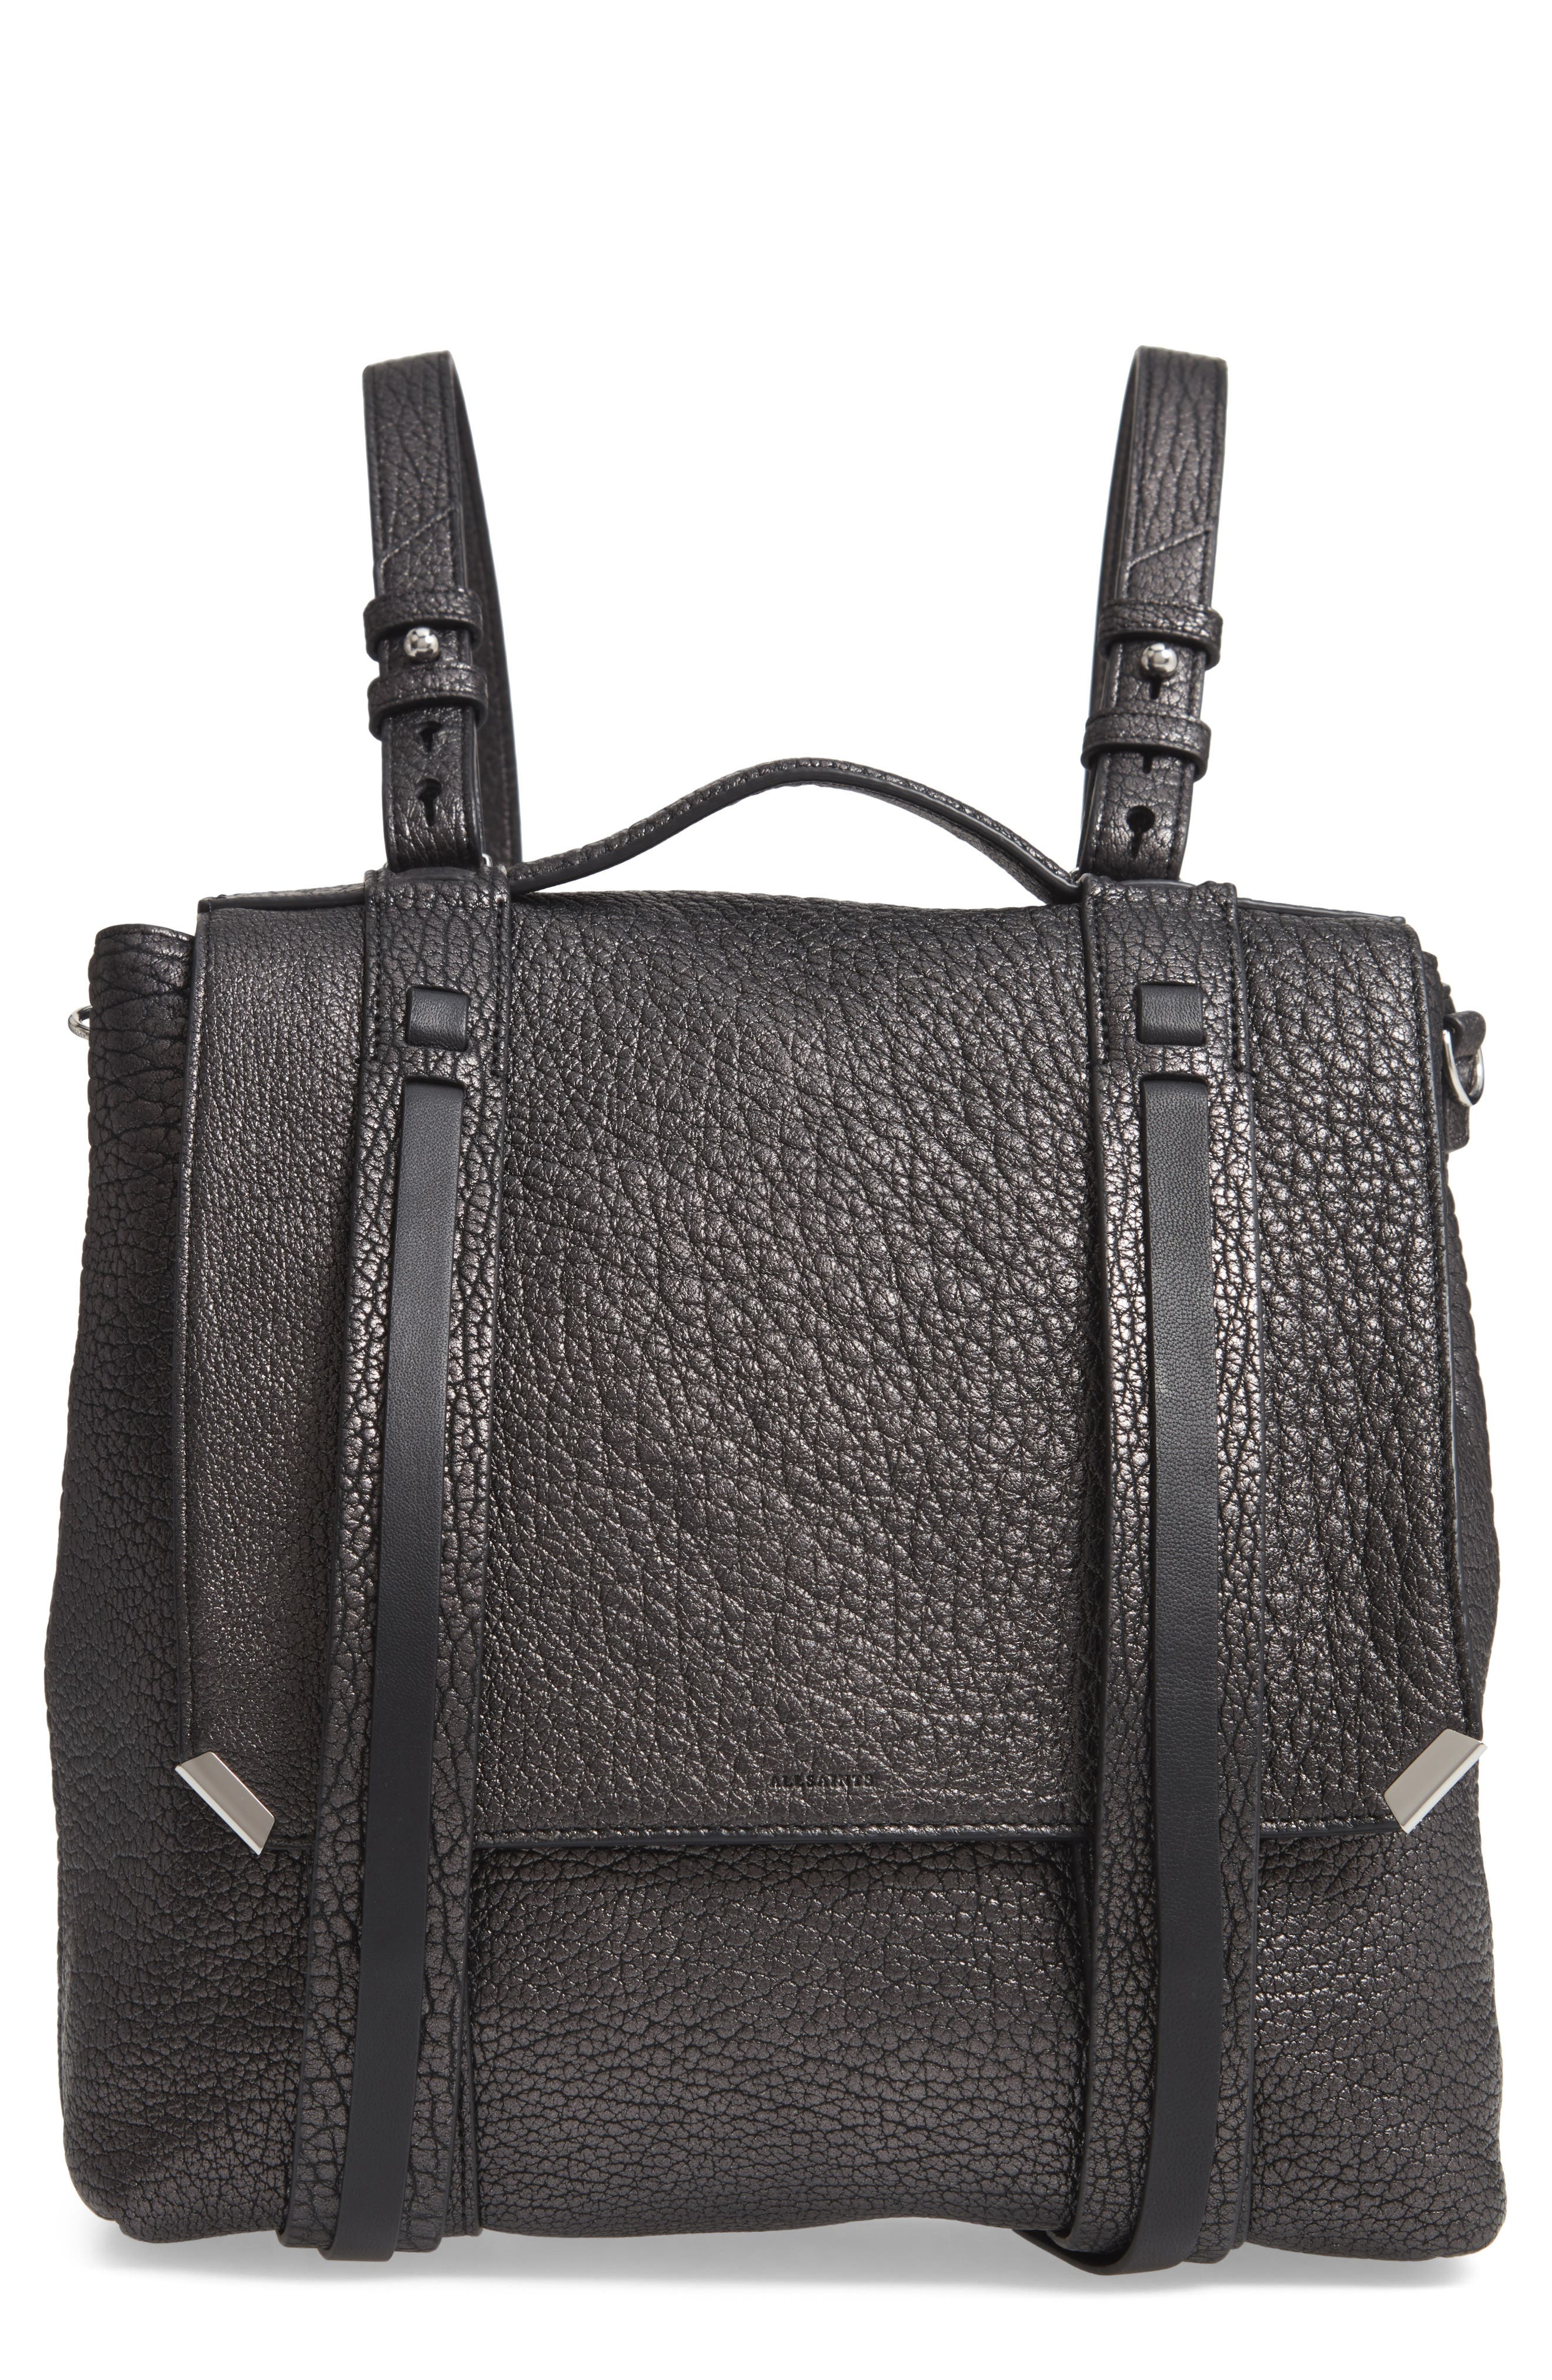 ALLSAINTS, Vincent Leather Backpack, Main thumbnail 1, color, 022